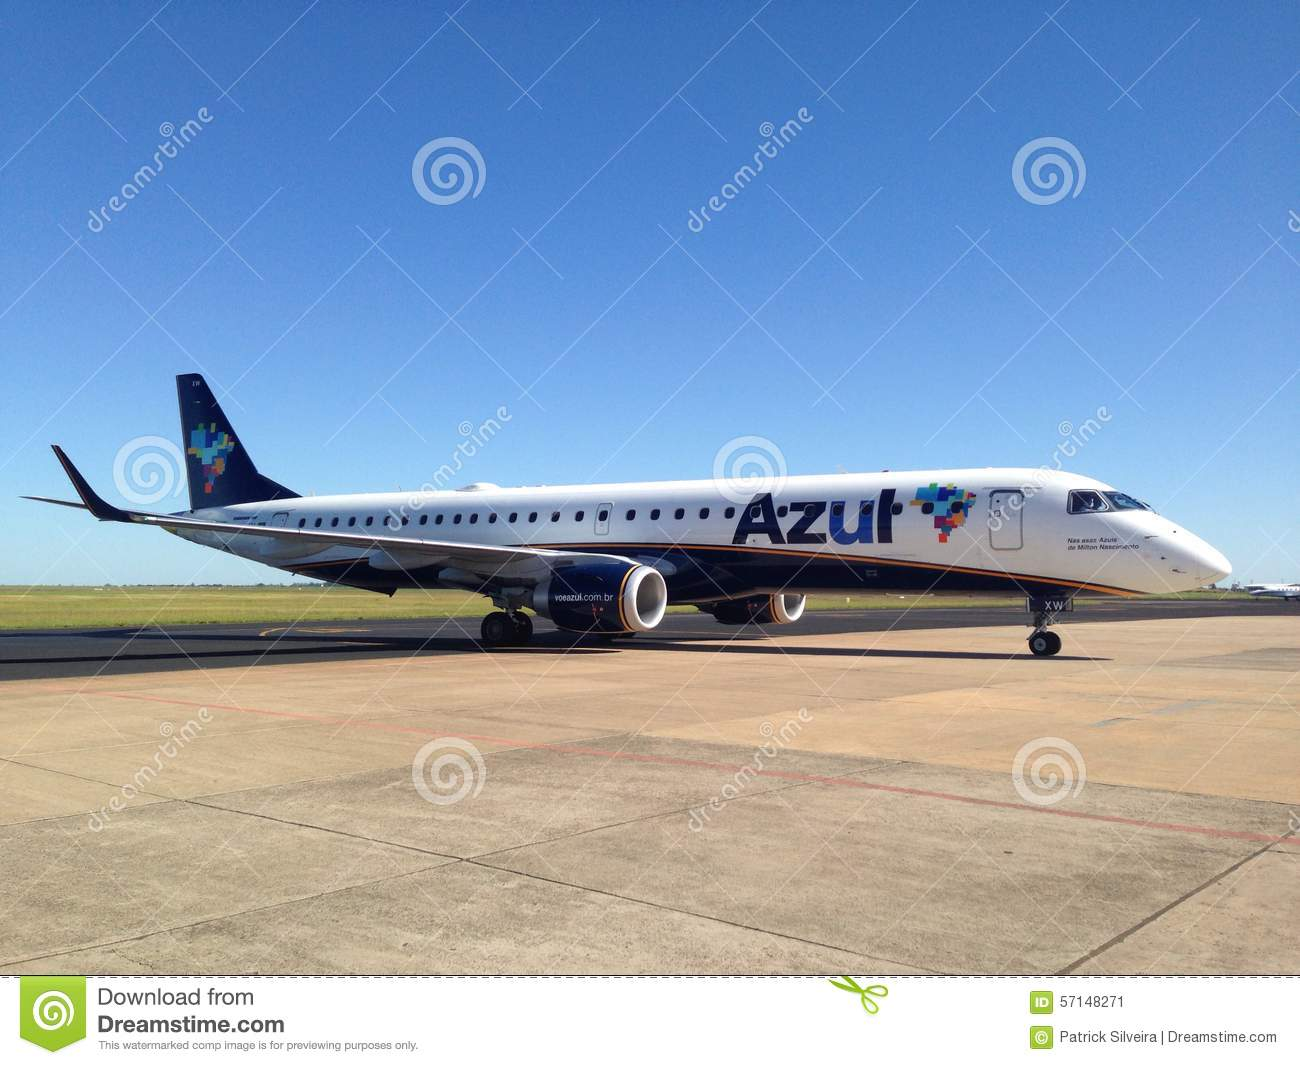 Azul Airlines airplane